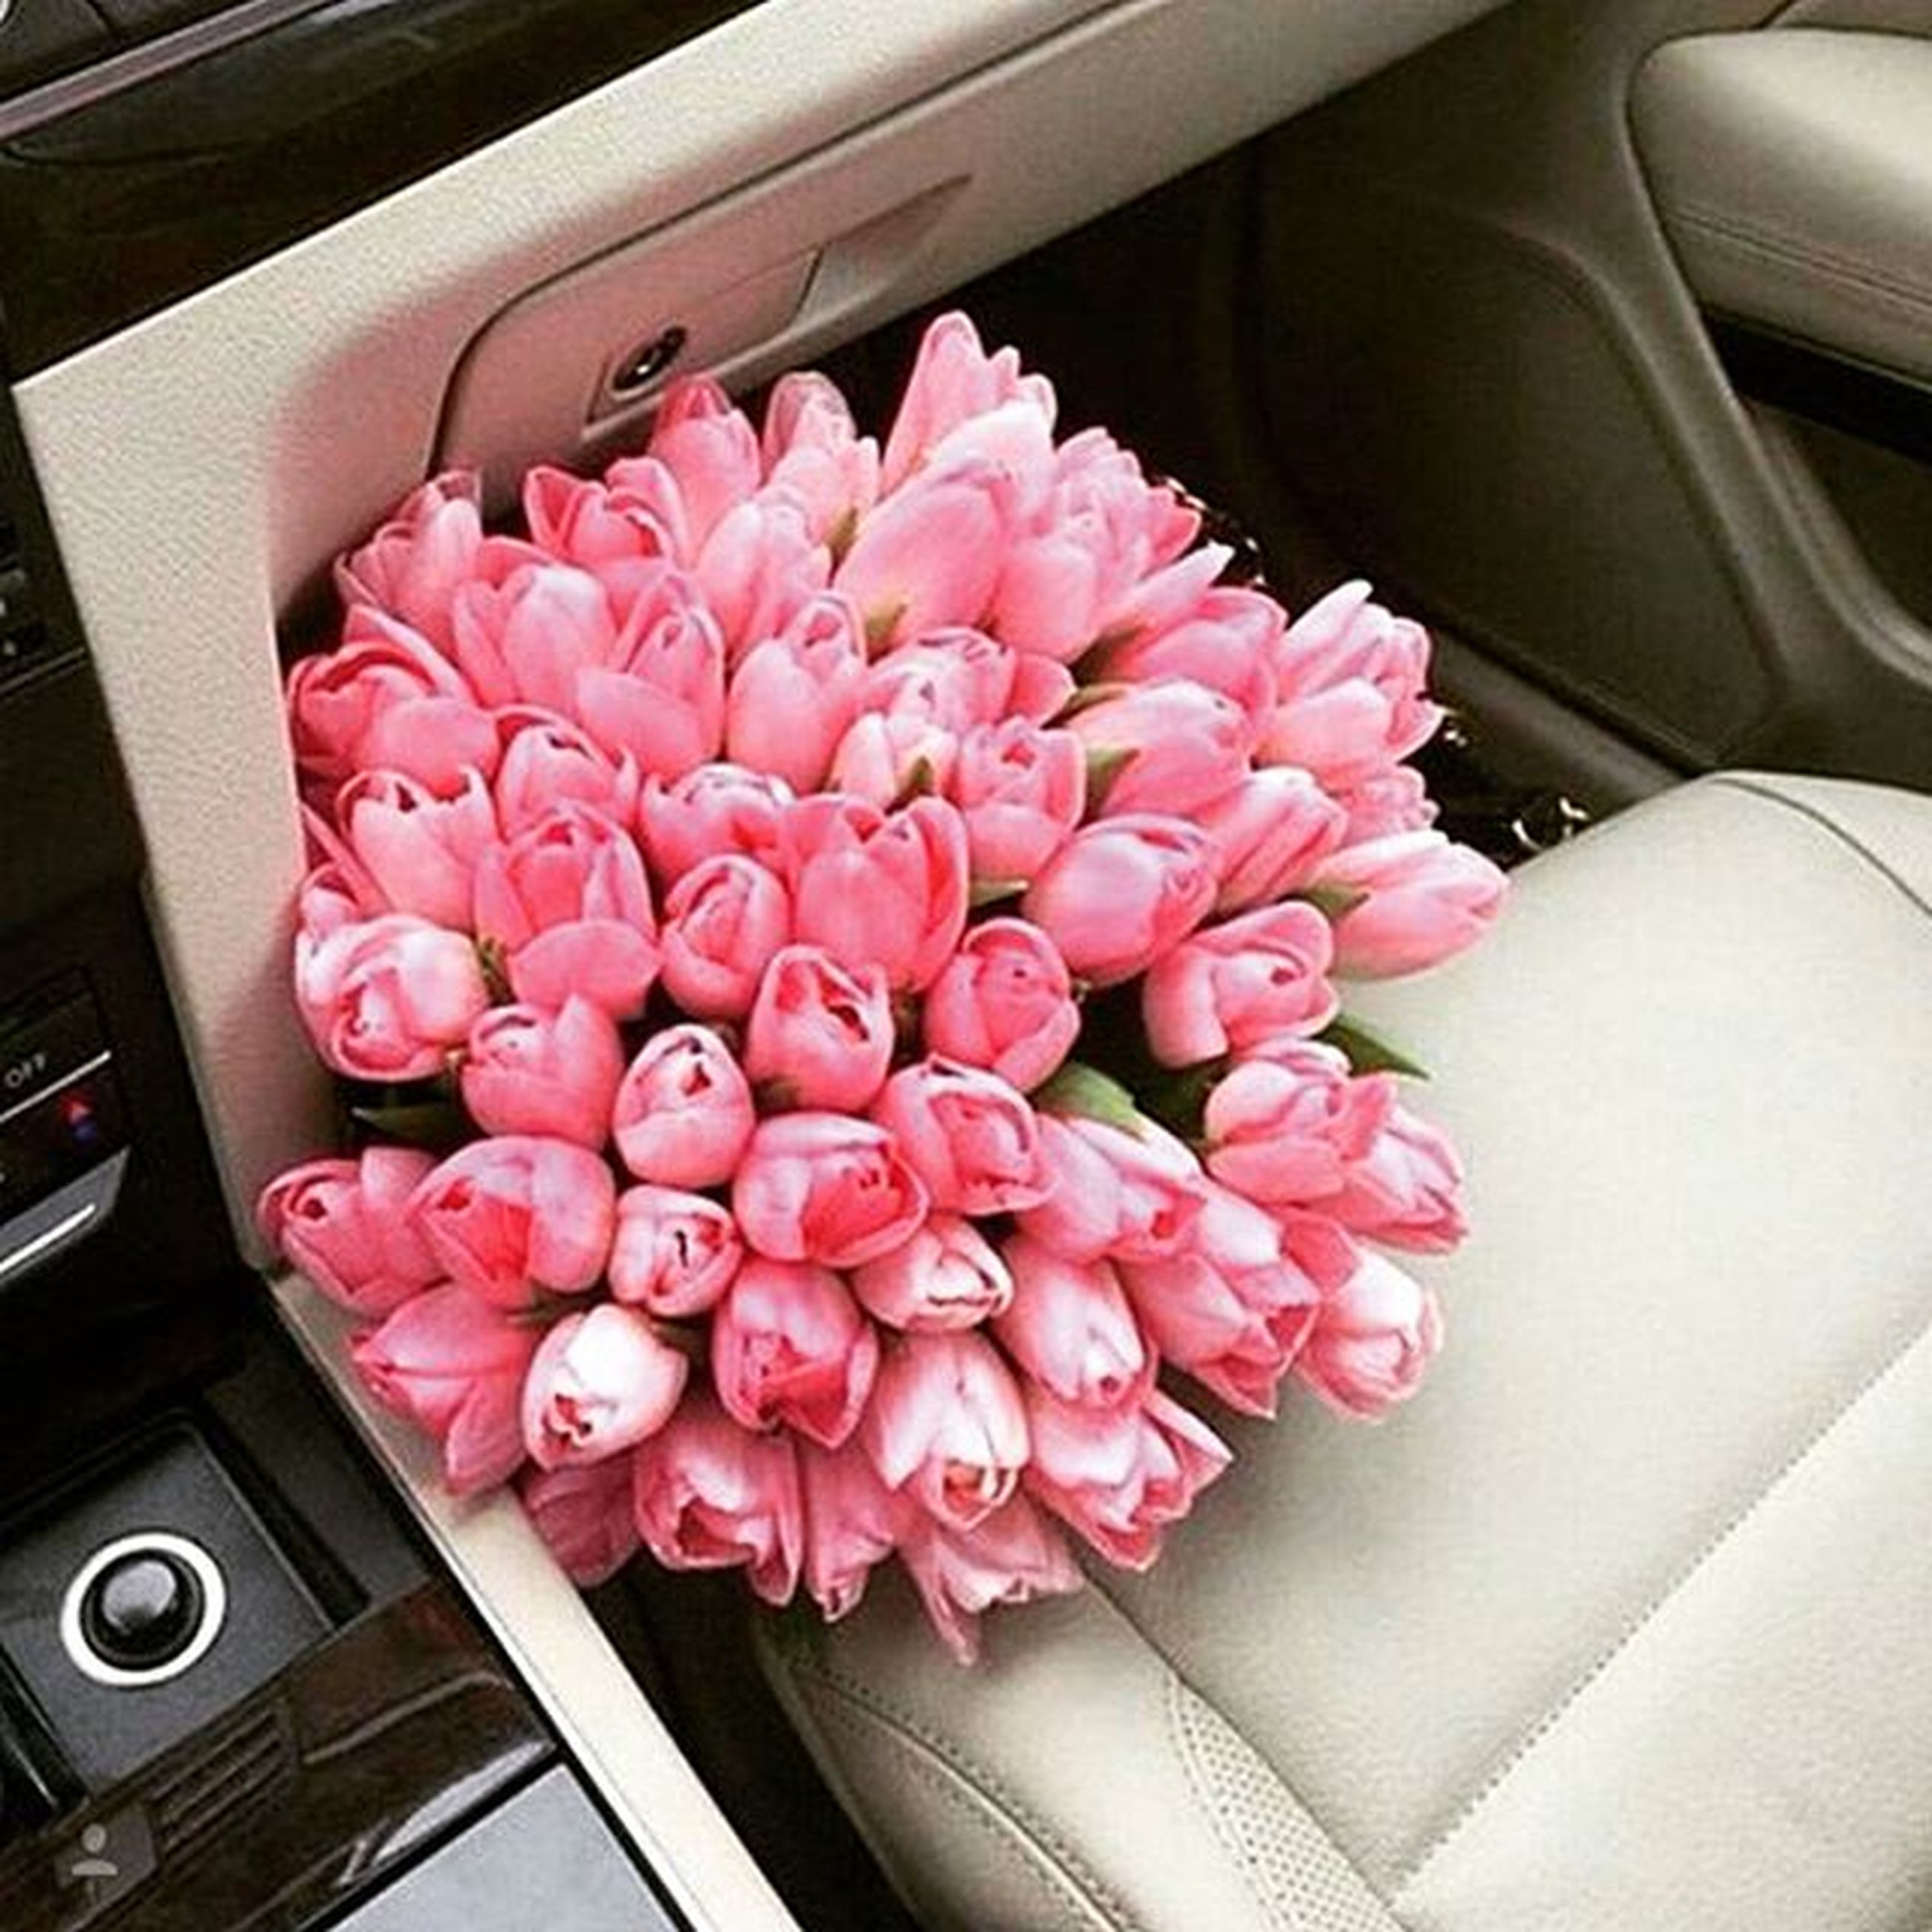 flower, indoors, high angle view, transportation, pink color, close-up, land vehicle, freshness, car, mode of transport, fragility, no people, nature, growth, glass - material, day, beauty in nature, vehicle interior, petal, window